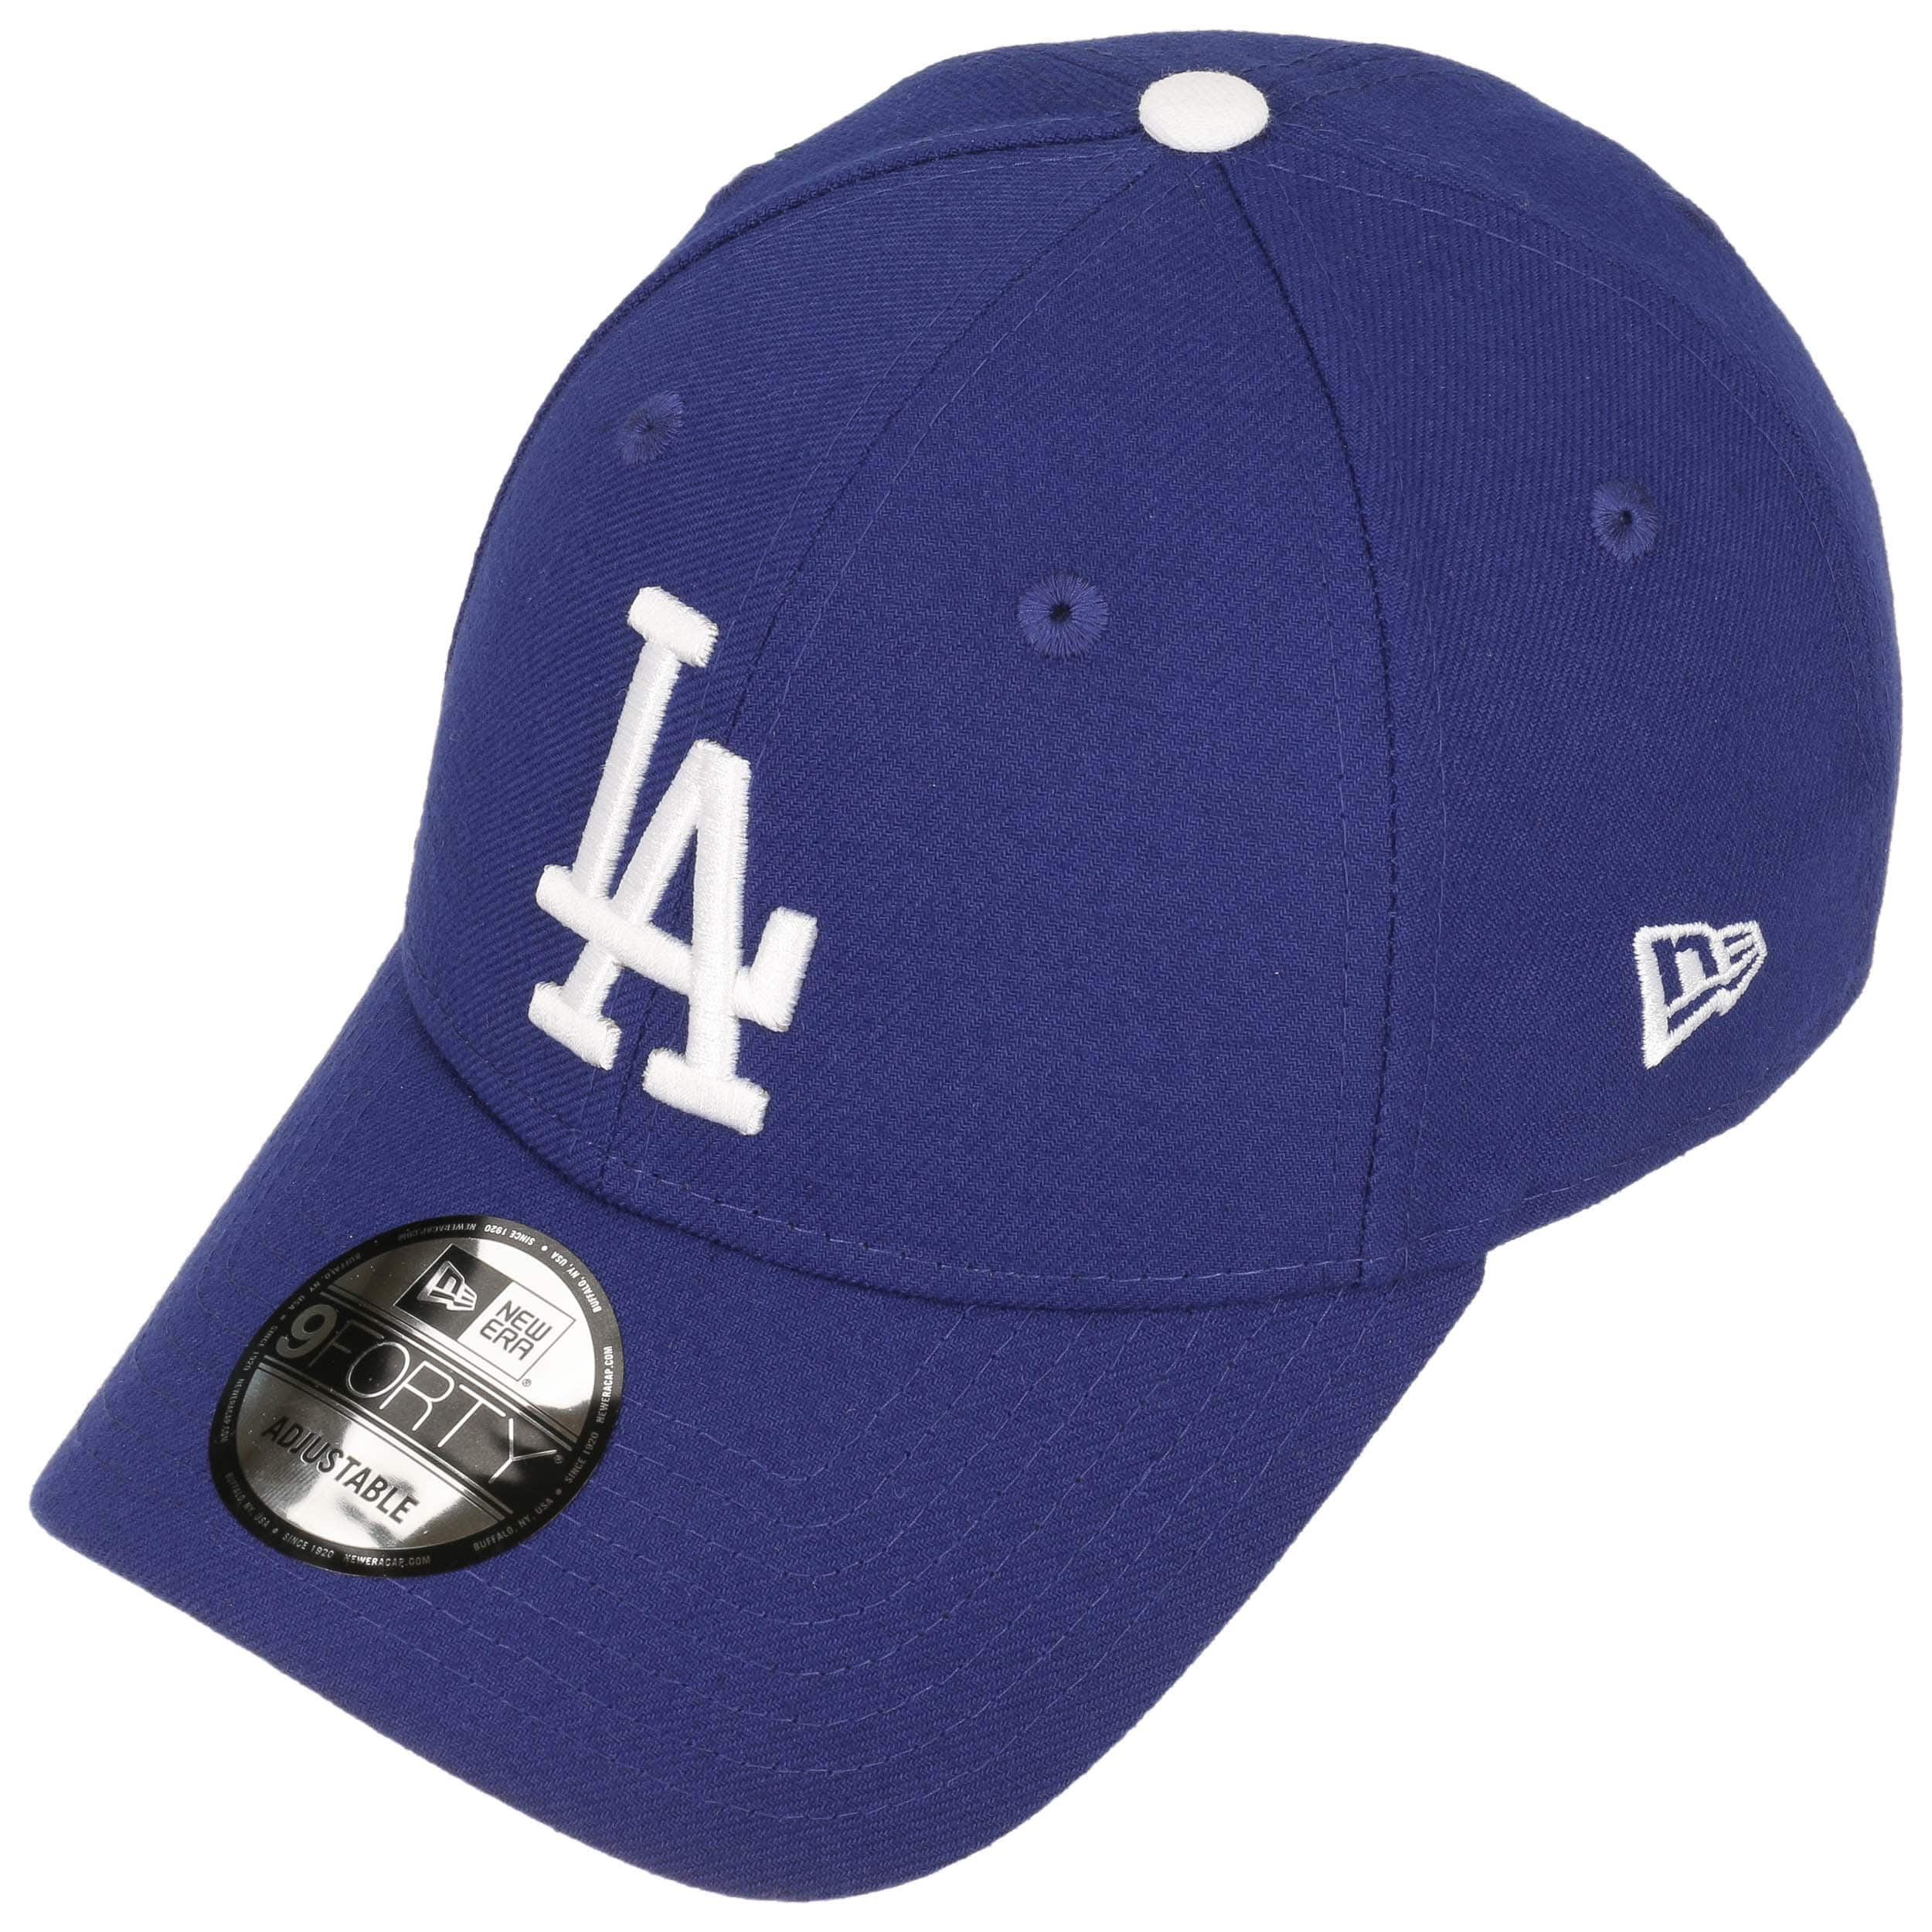 4d791f896ea09 Gorra 9Forty The League Dodgers by New Era - Gorras - sombreroshop.es